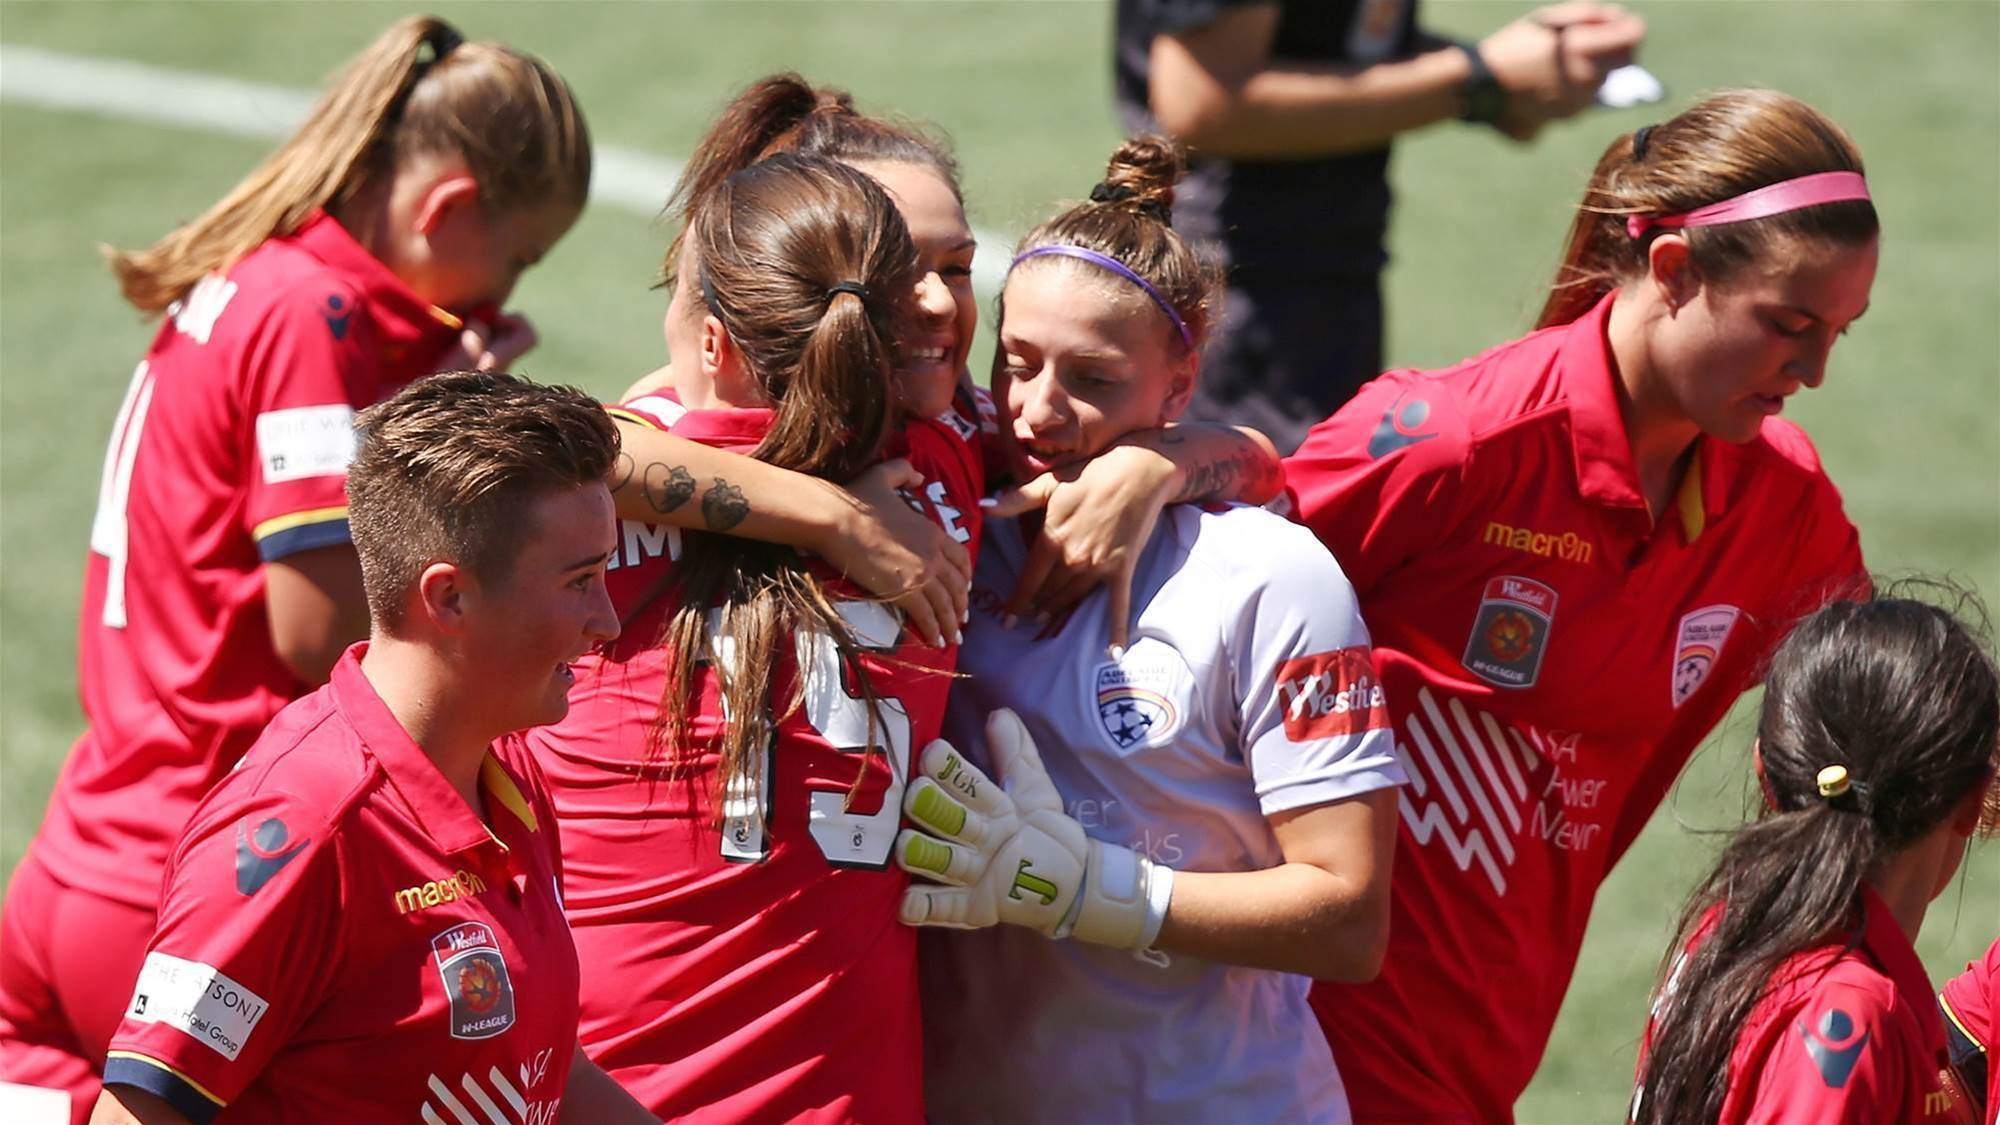 Canberra clinch premiership after Reds rout Sydney